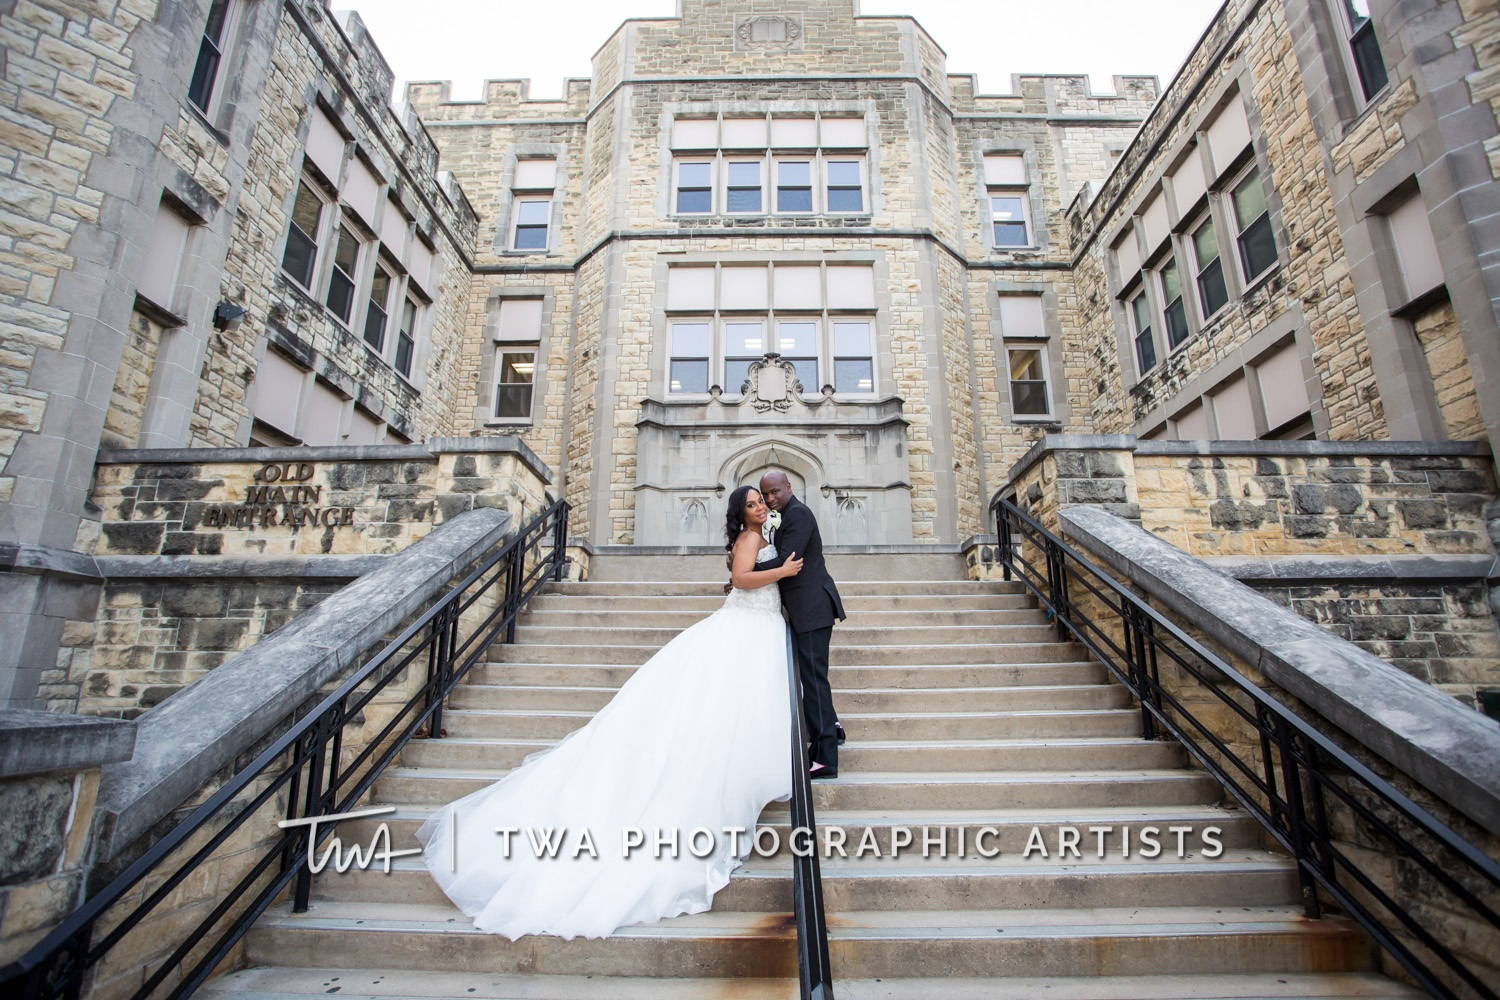 Chicago-Wedding-Photographer-TWA-Photographic-Artists-Haley-Mansion_Graves_Moffett_JM-023_0382